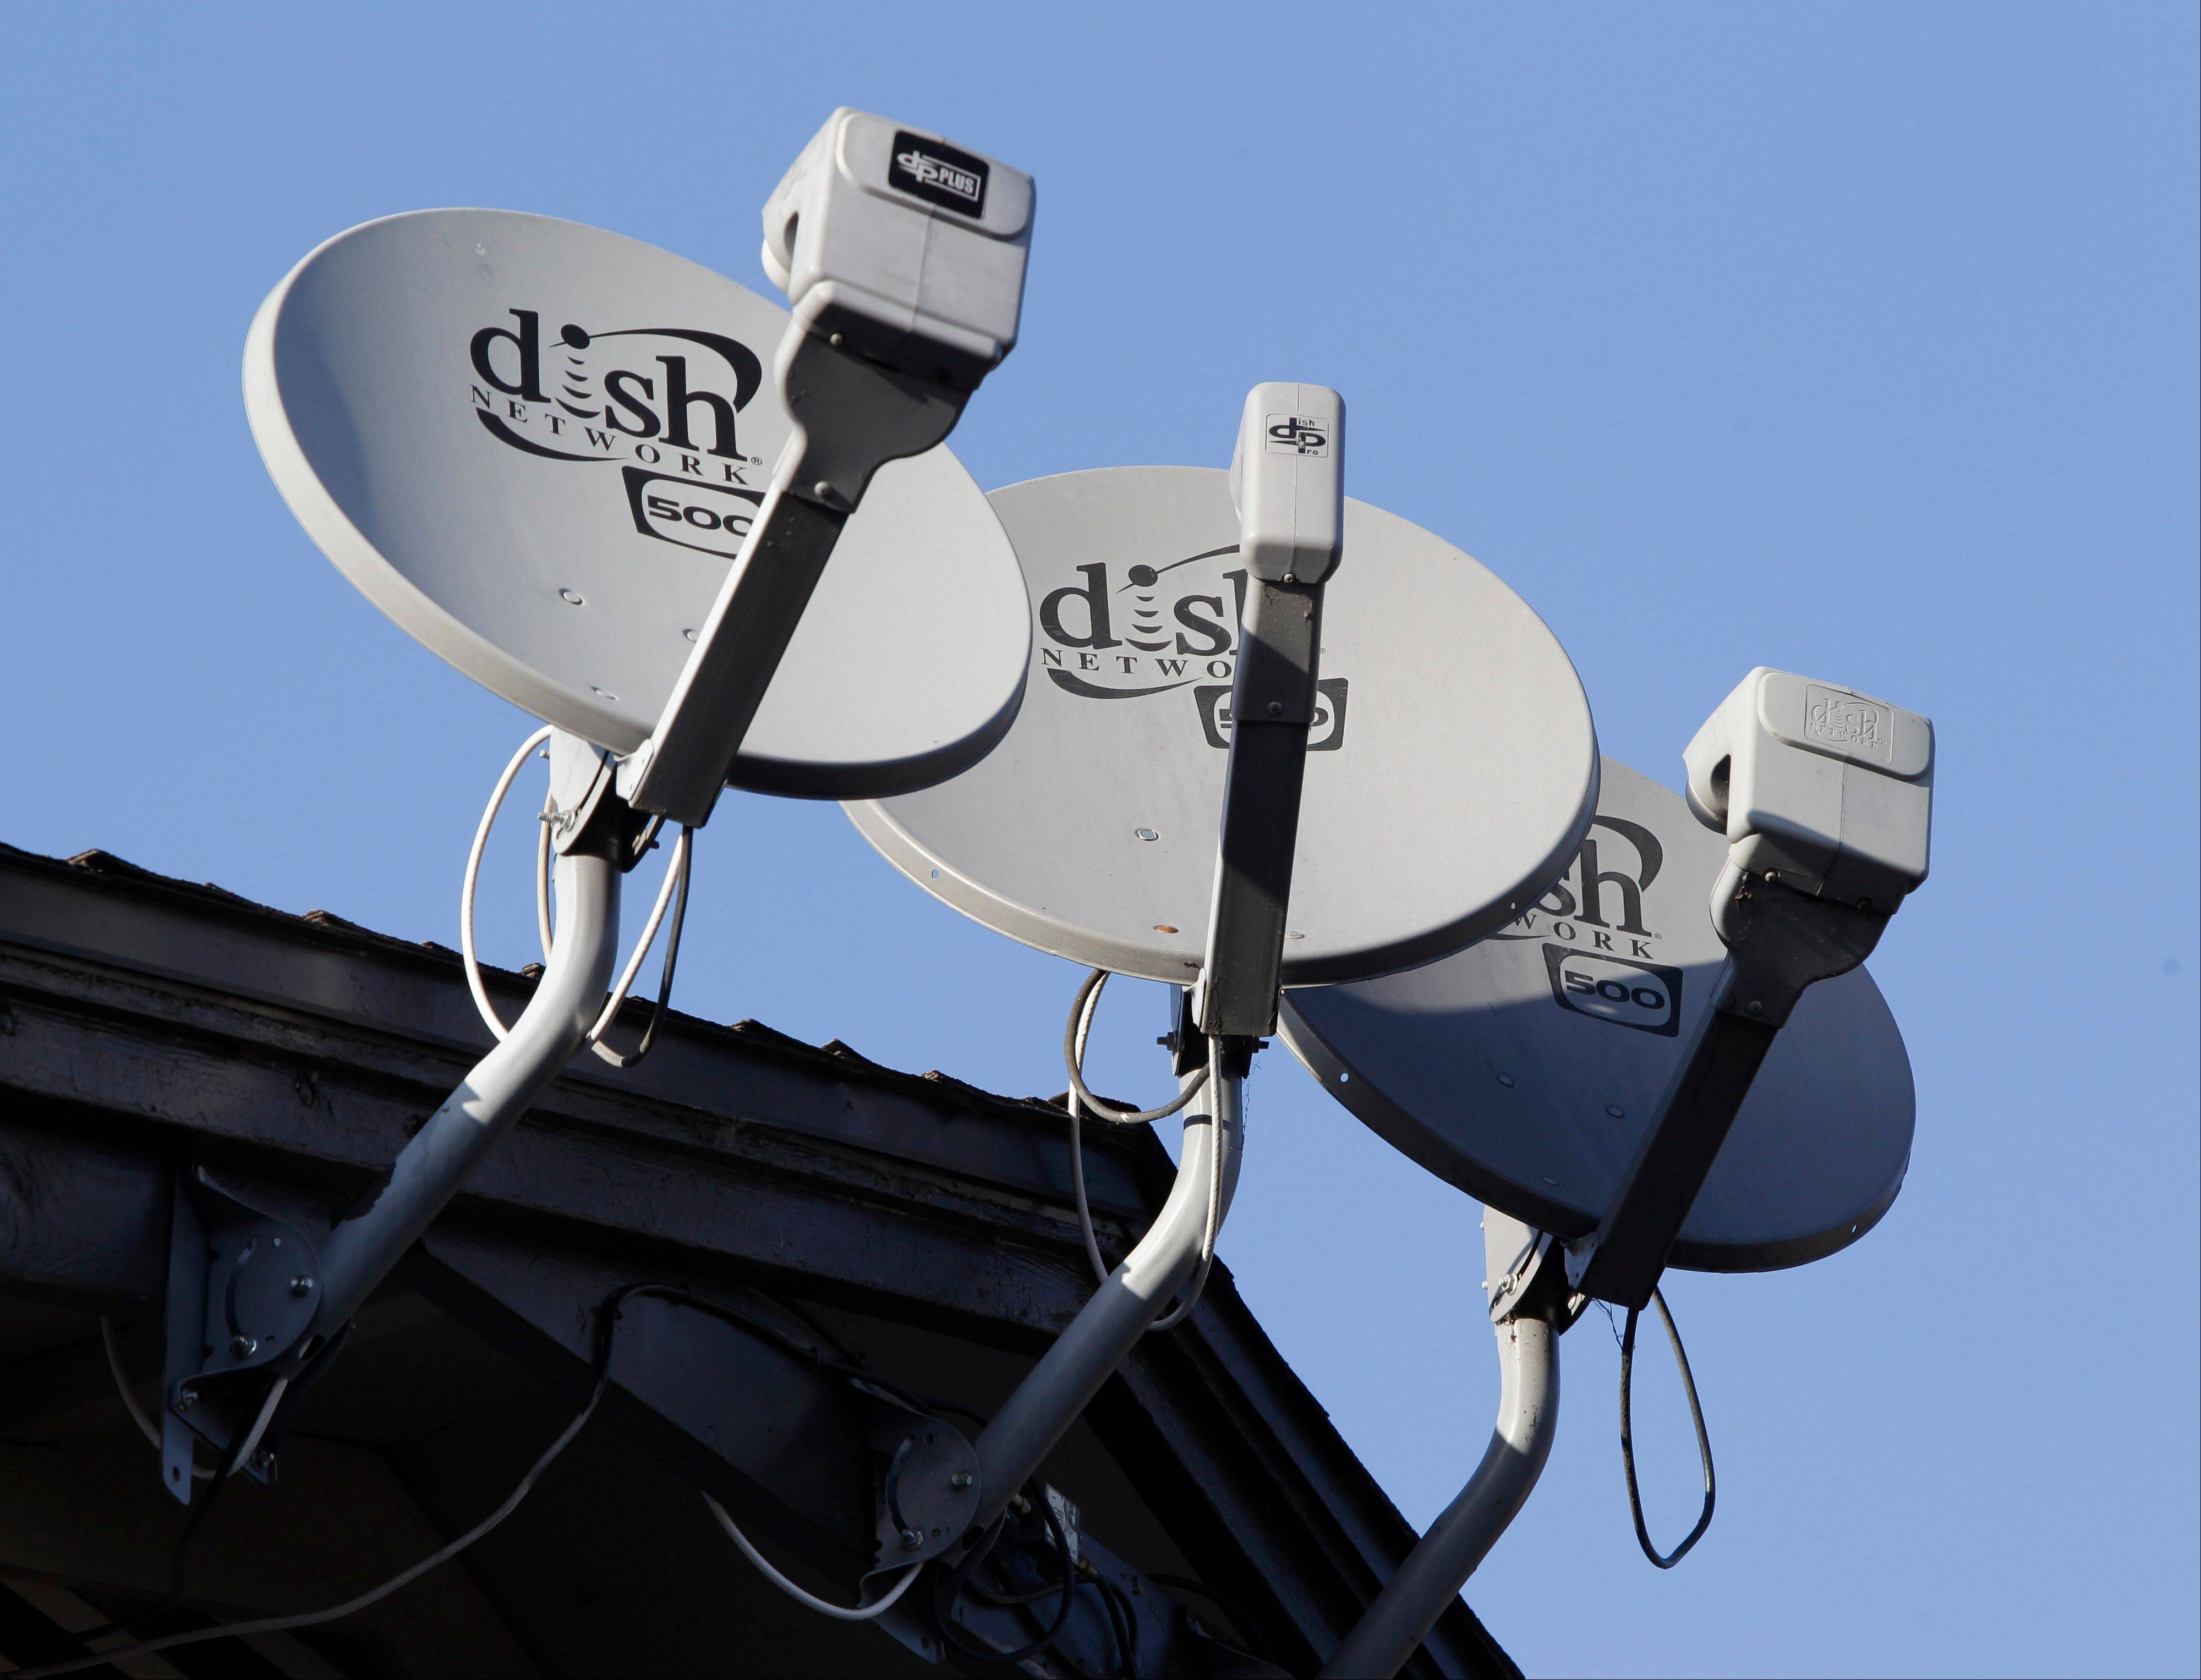 Dish Network is offering to buy Sprint Nextel Corp. in a cash-and-stock deal it values at $25.5 billion, saying its bid is superior to that of Japanese phone company SoftBank.